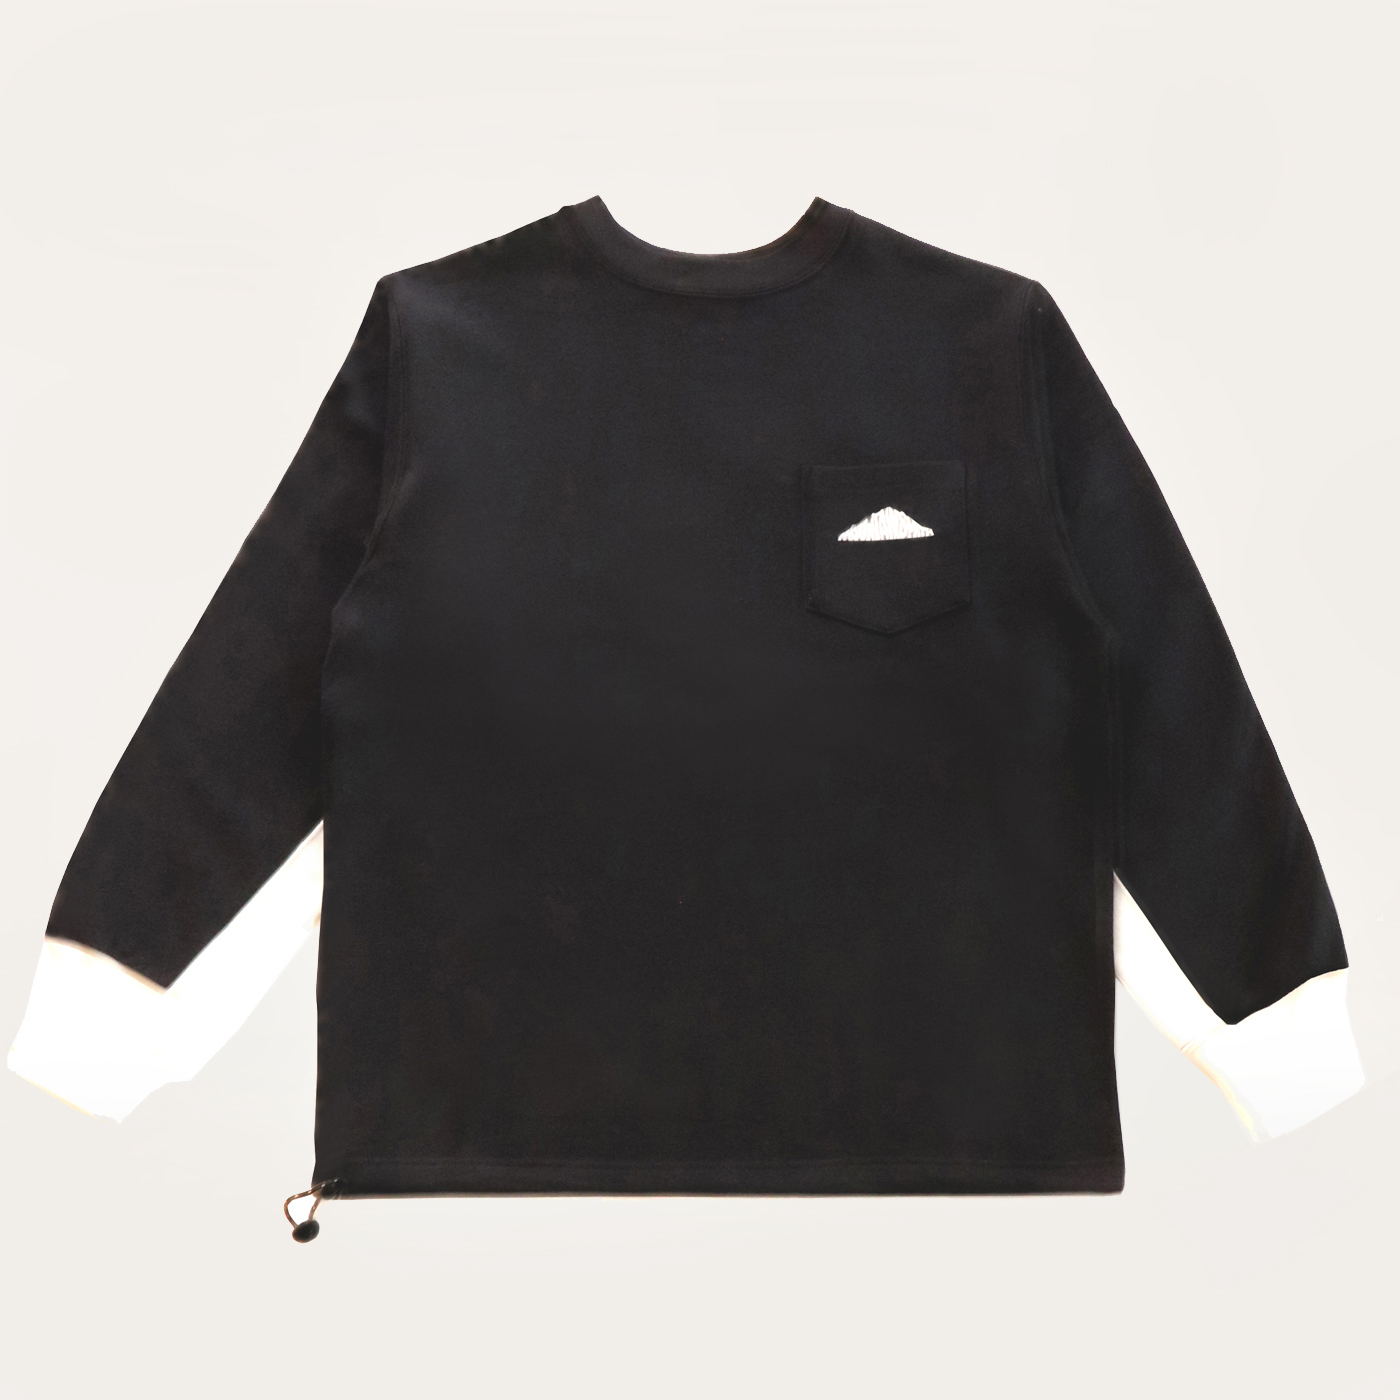 product: Granby Recycled Crew / color: BLACK 1